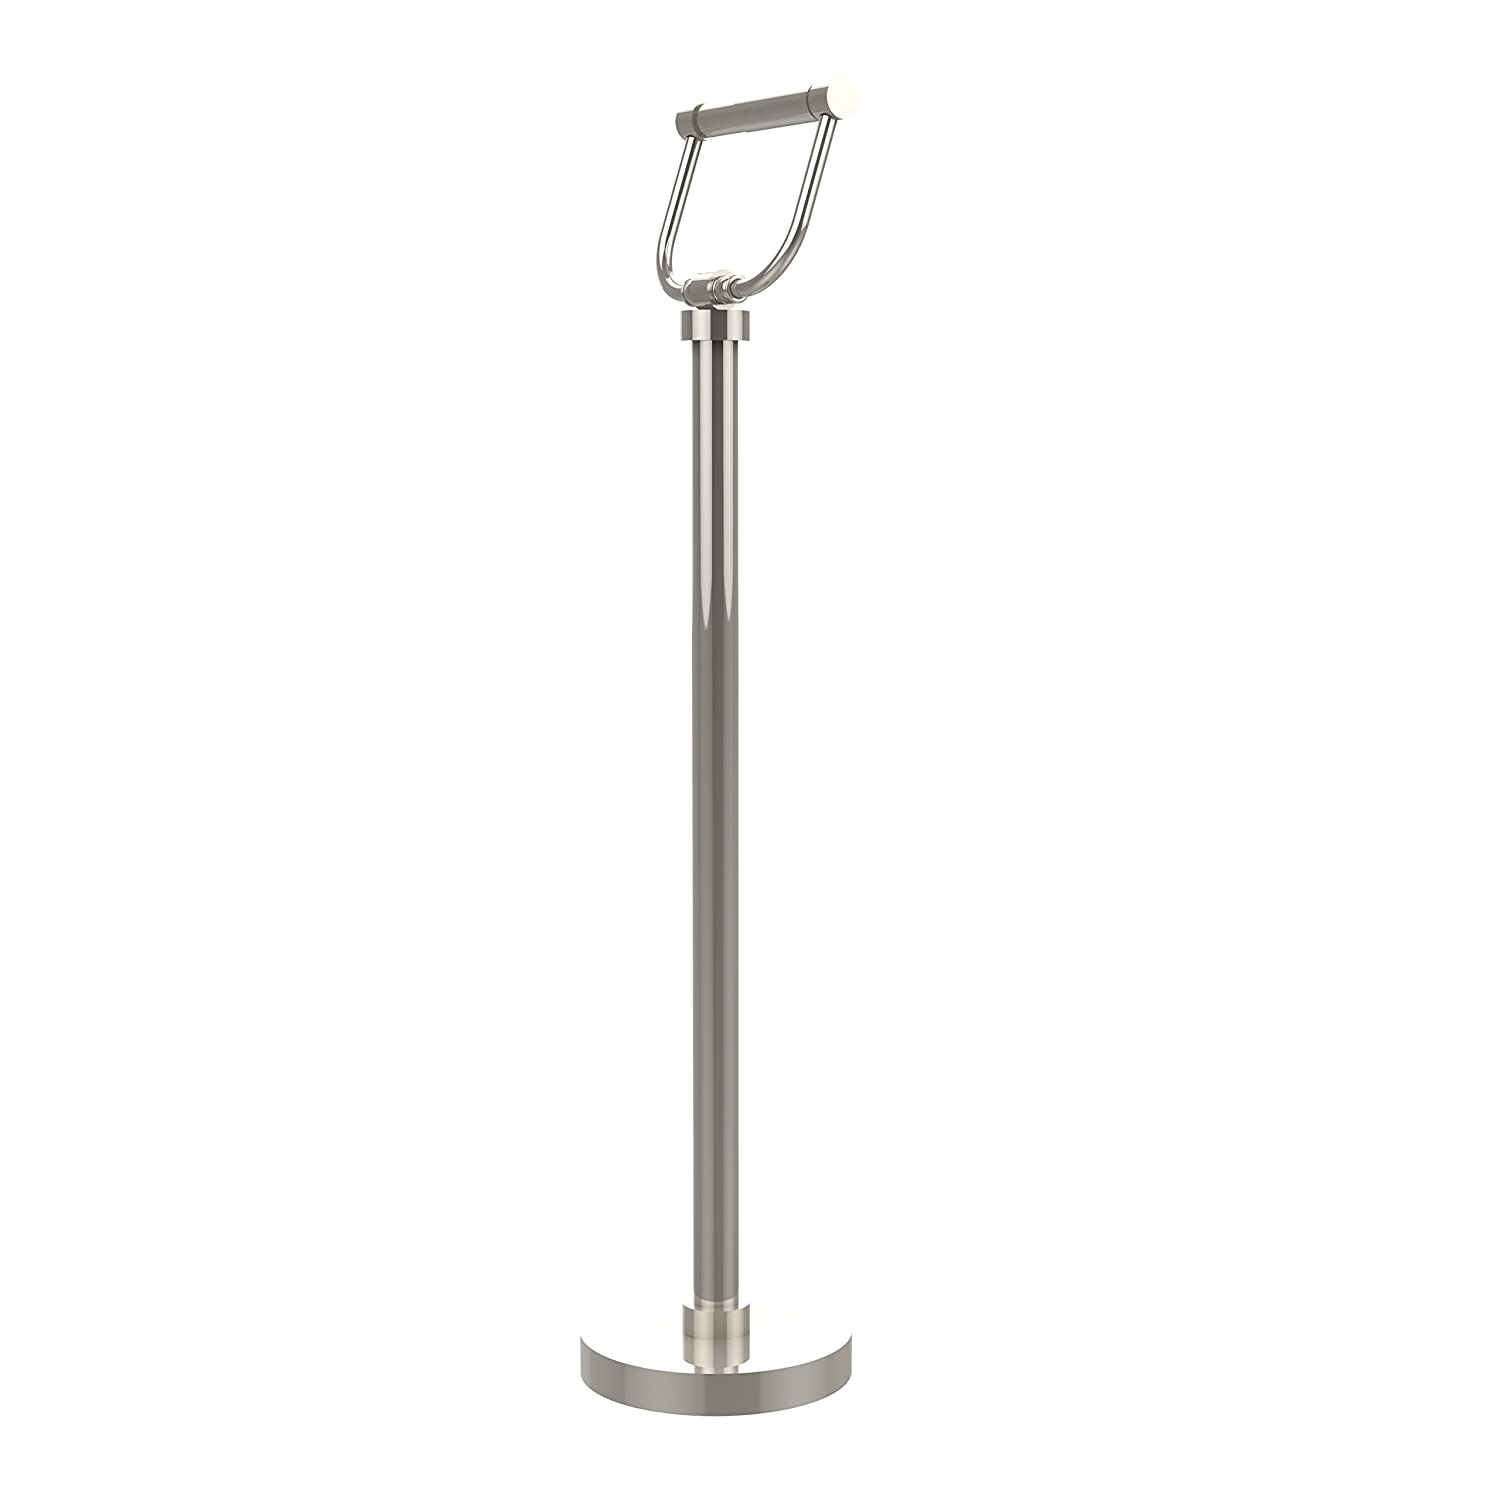 Allied Brass TS-25-PNI Free Standing Tissue Holder, 26-Inch, Polished Nickel by Allied Precision Industries B0087LJB90 光沢ニッケル 光沢ニッケル